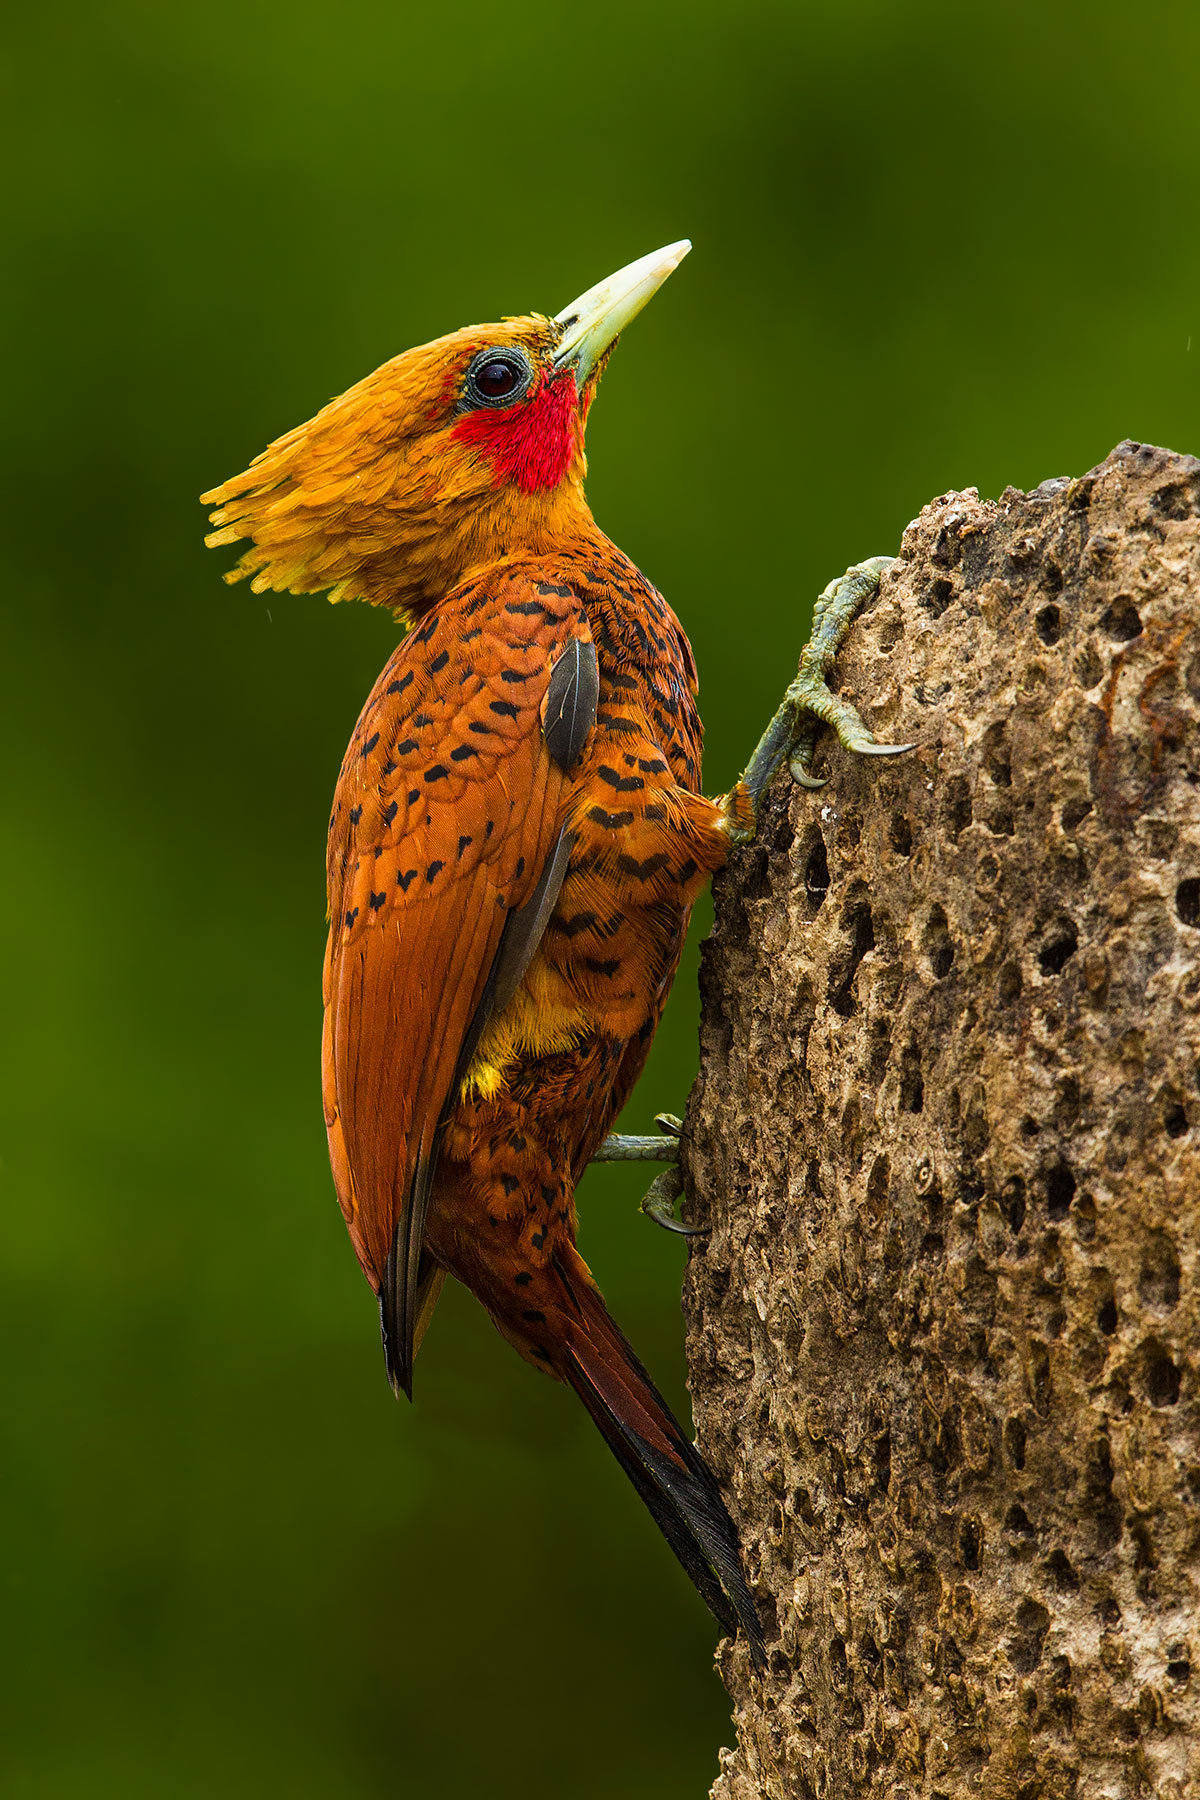 emuwren:  The Chestnut-coloured Woodpecker - Celeus castaneus, is a species of bird in the Picidae family. Its natural habitat is subtropical or tropical moist lowland forests. Photo by Bill Holsten.